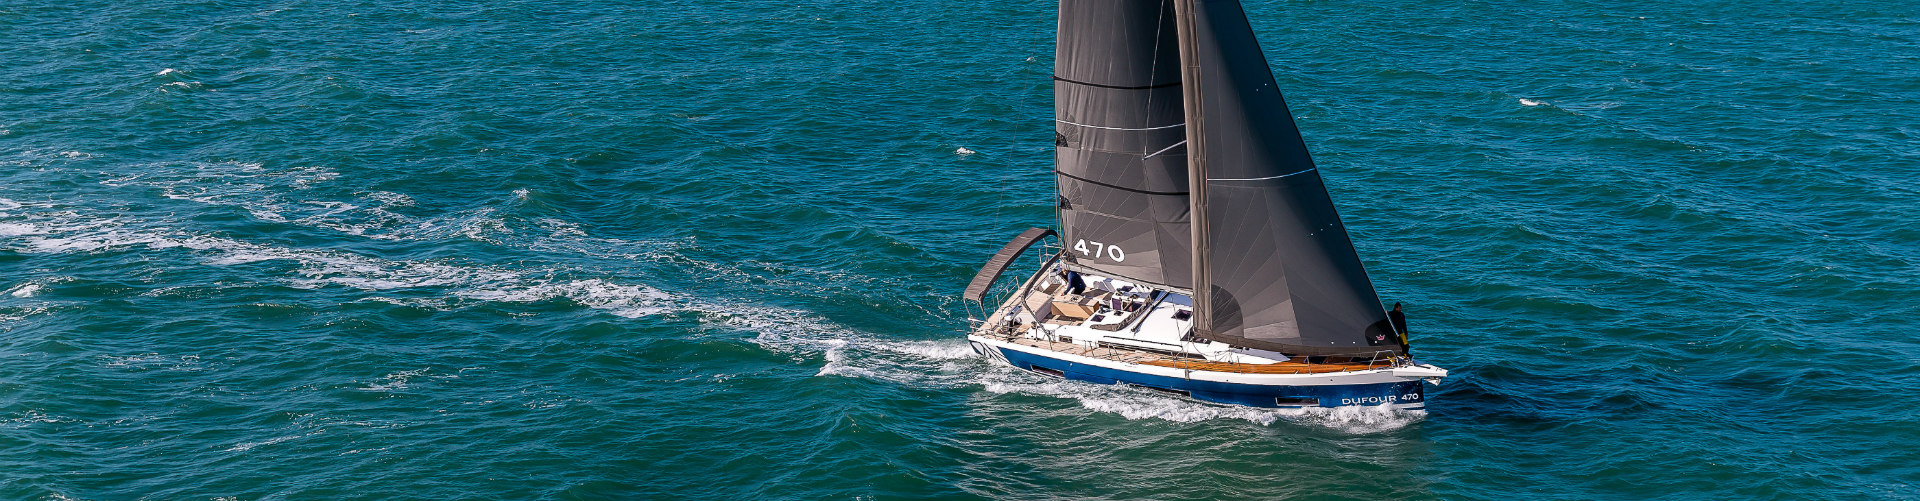 Boat Hire Solent Yacht Charters and Outdoor Activities